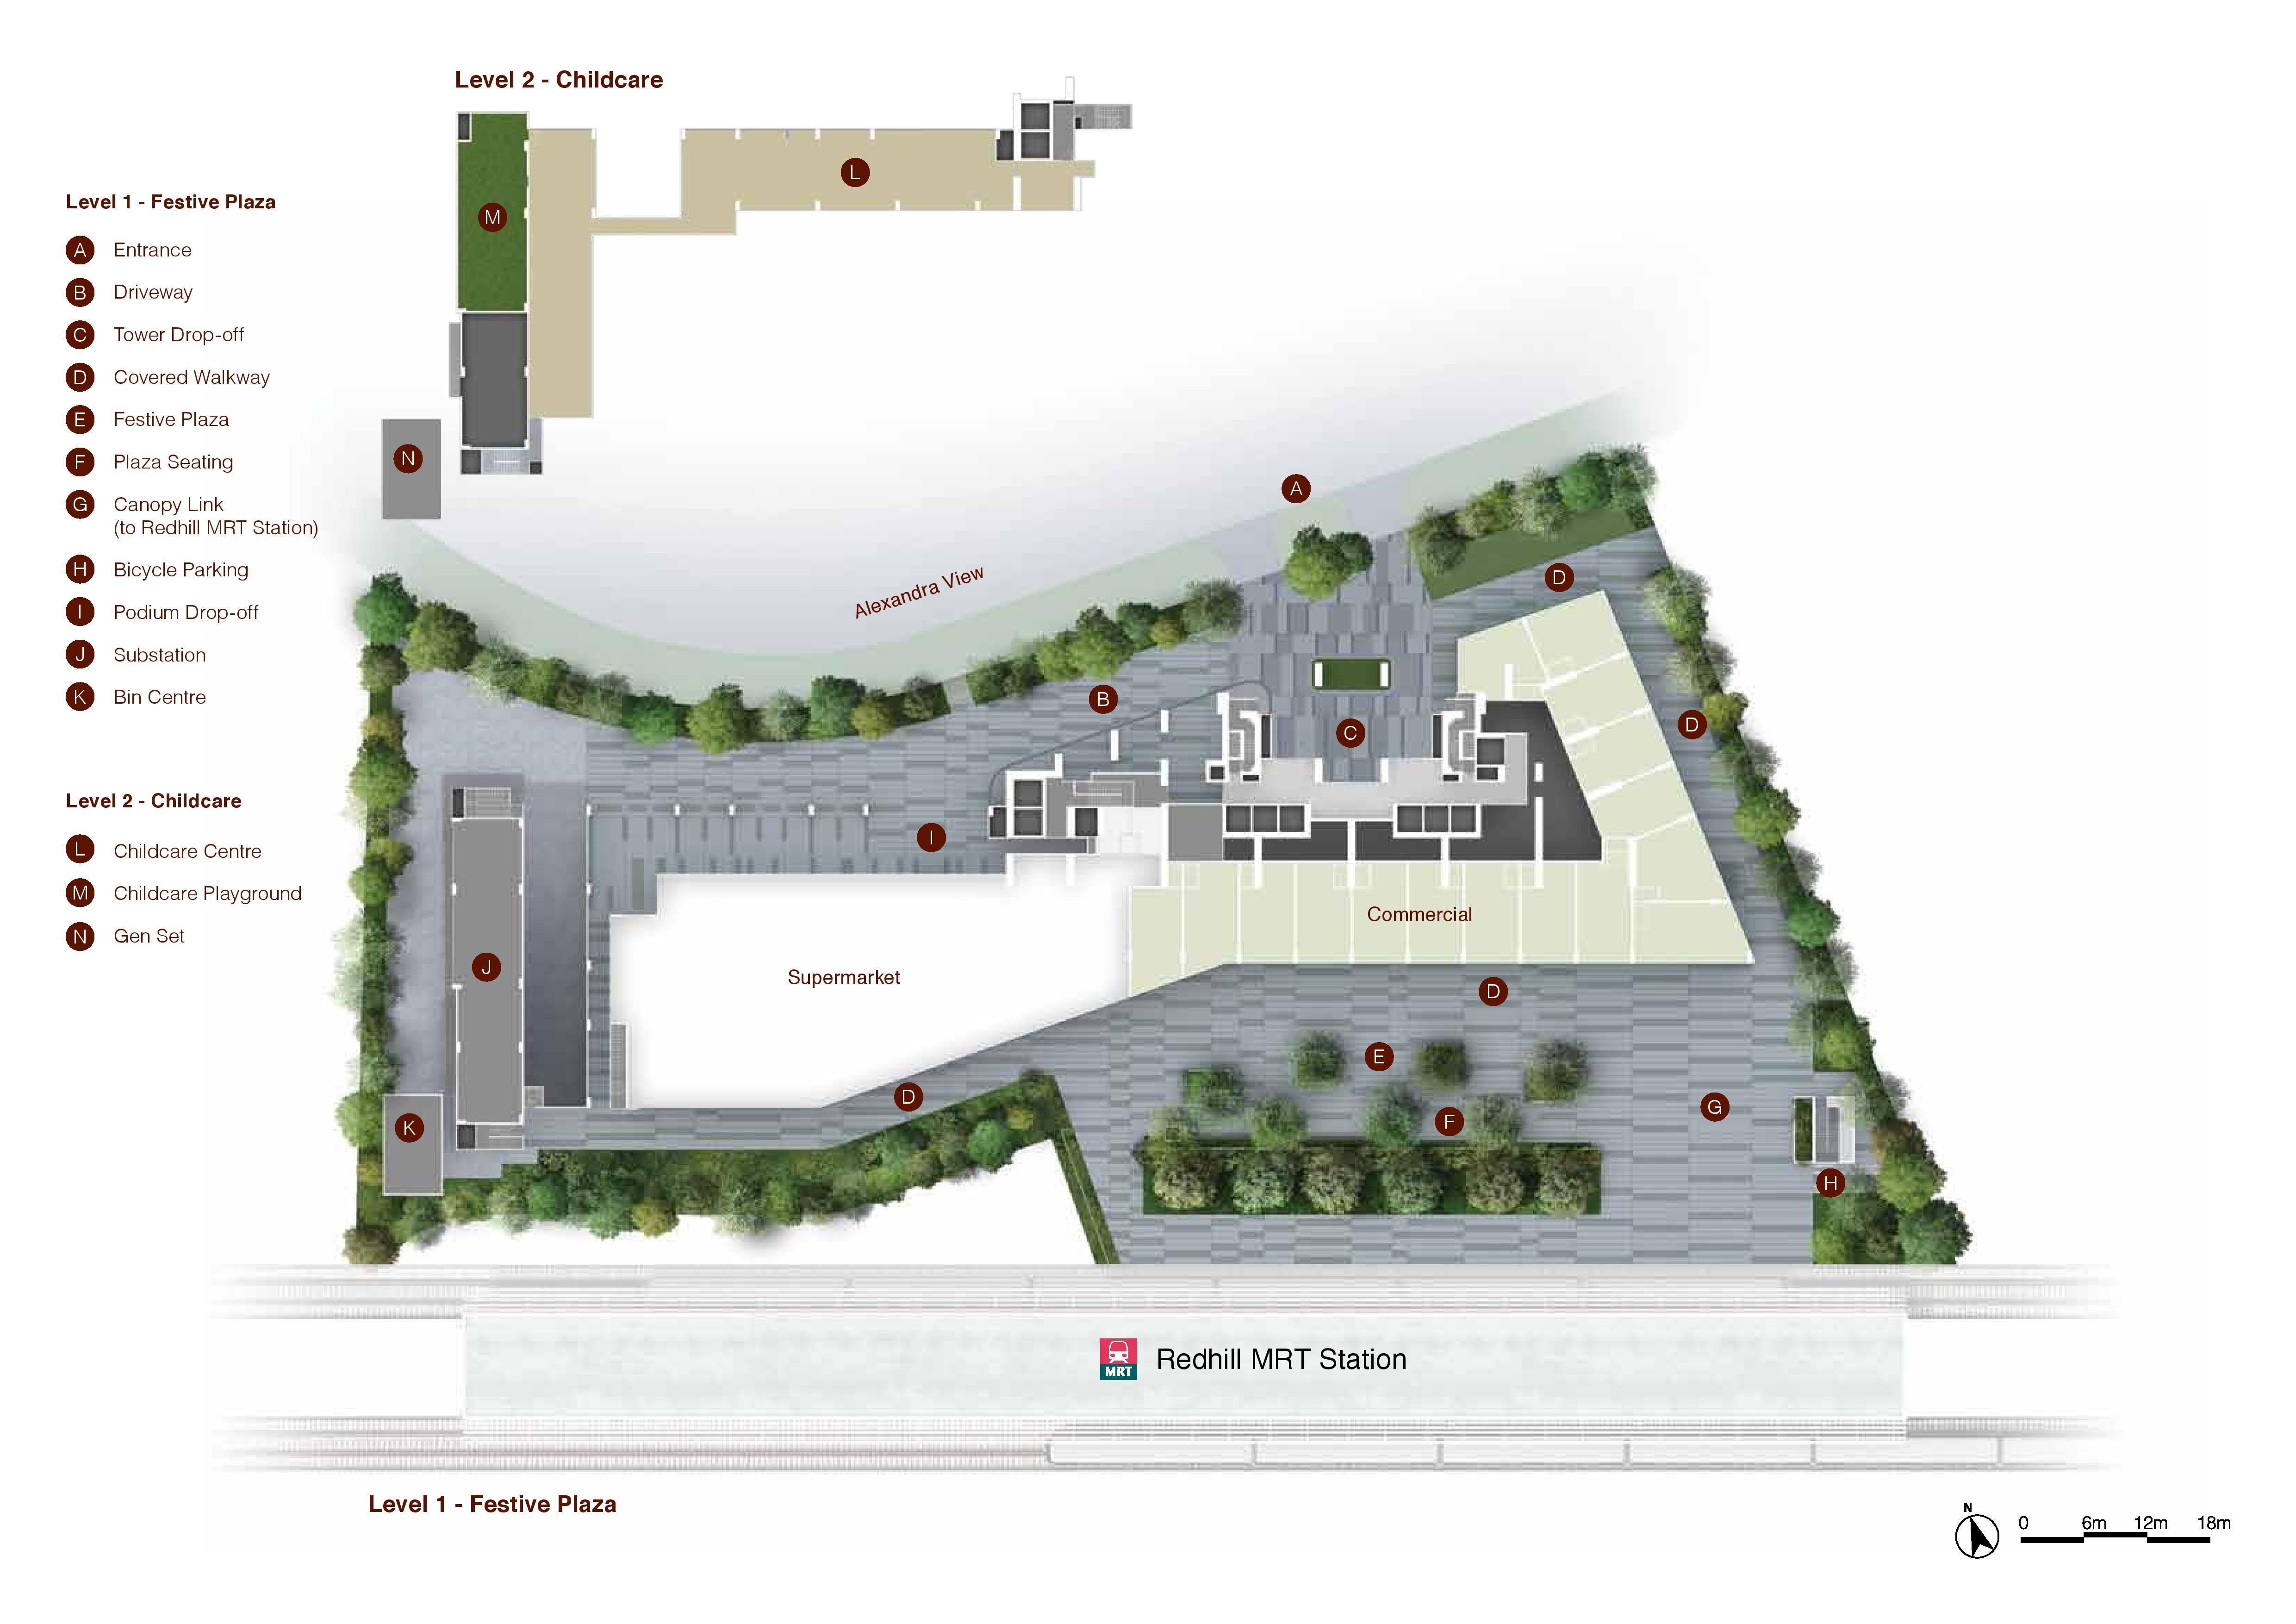 Artra Festive Plaza and Child Care Site Map